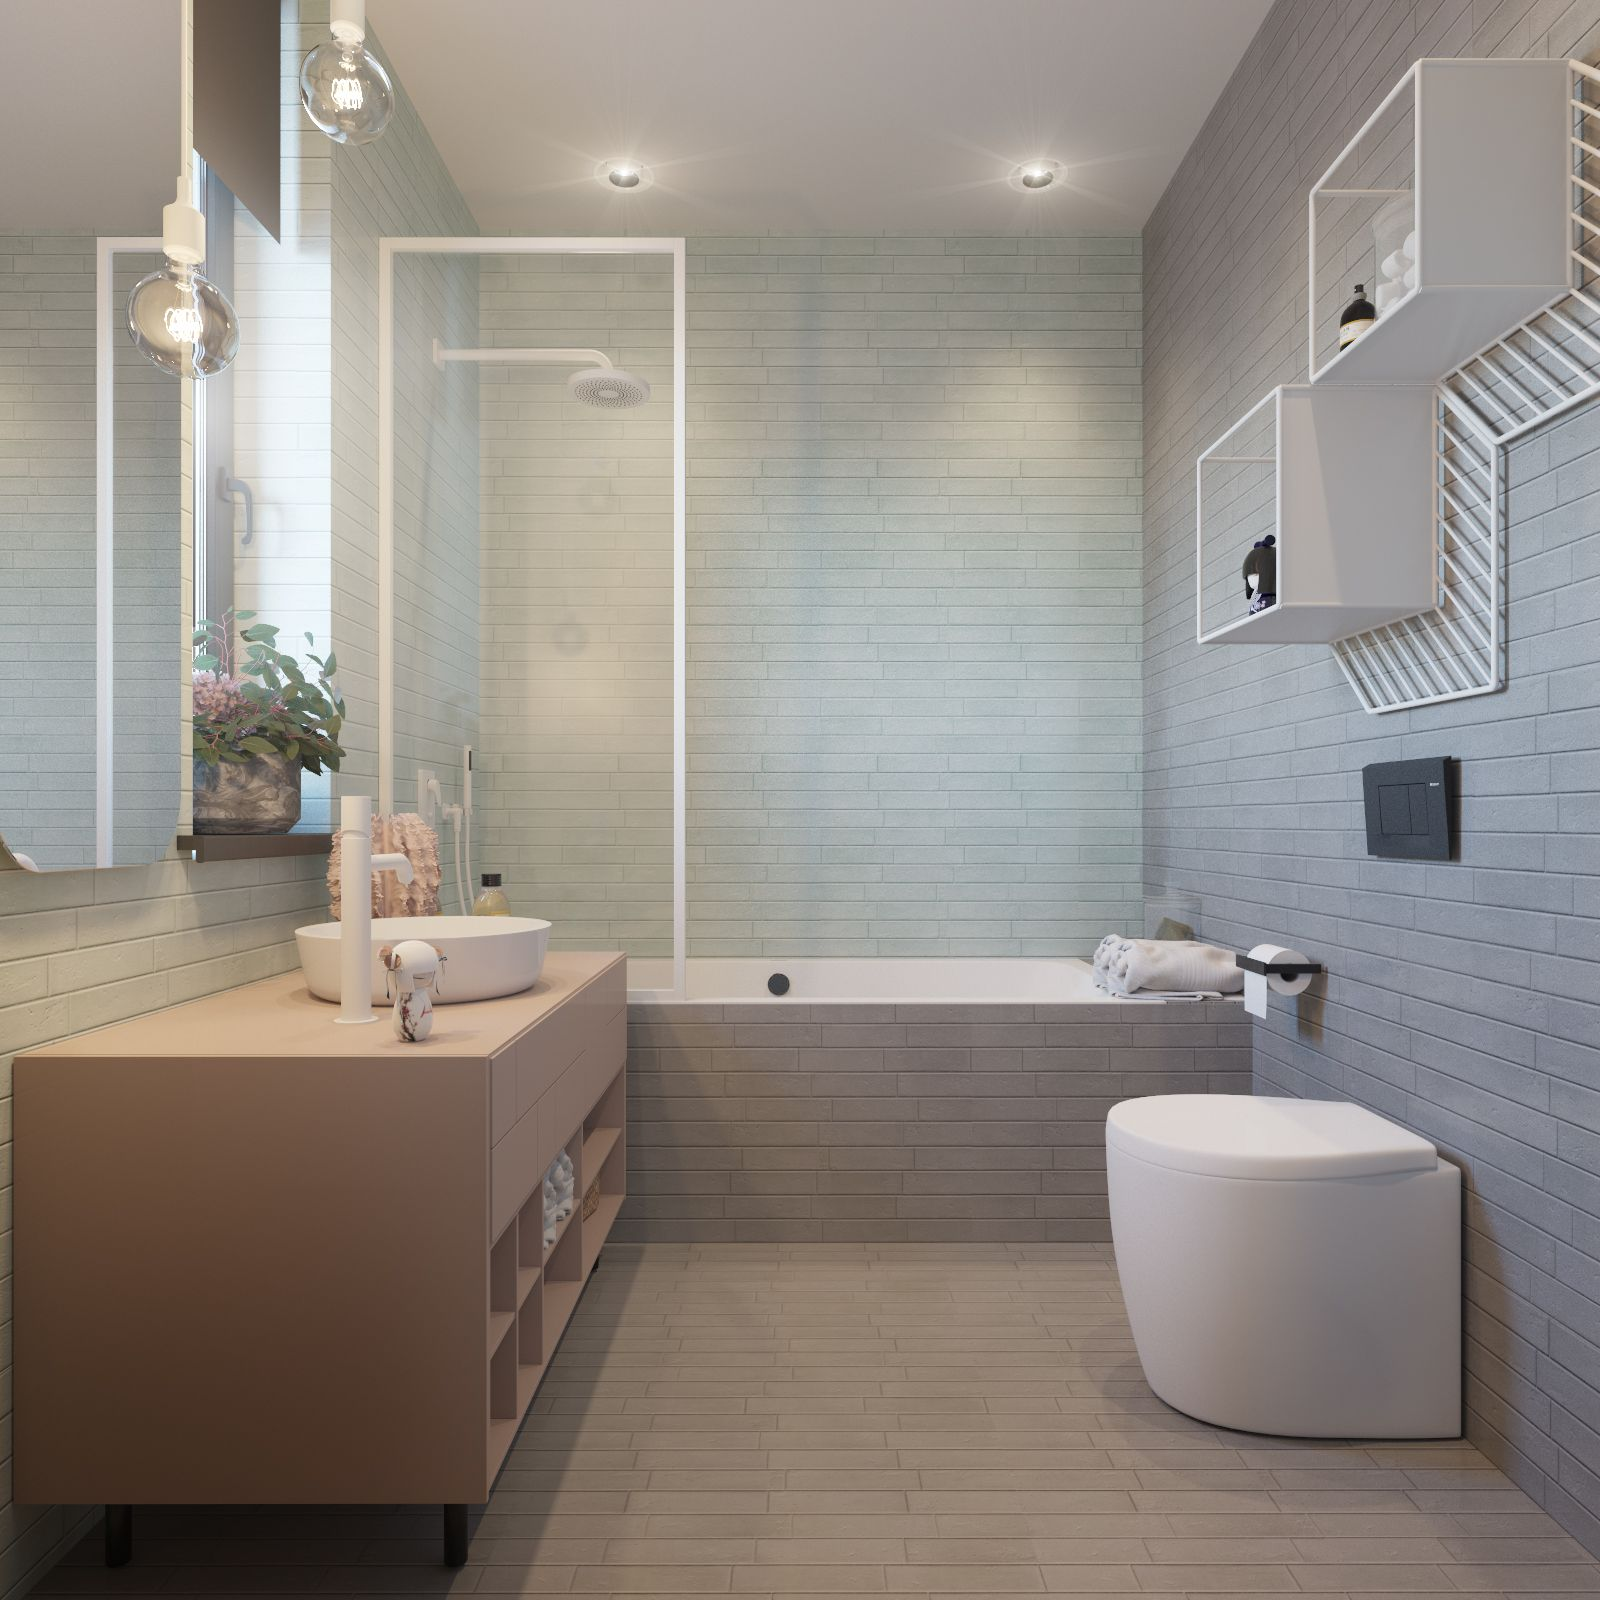 Pin By Rachel Chu On Interior Design By Olia Paliychuk Minimalist Bathroom Design Best Bathroom Designs Cool Apartments